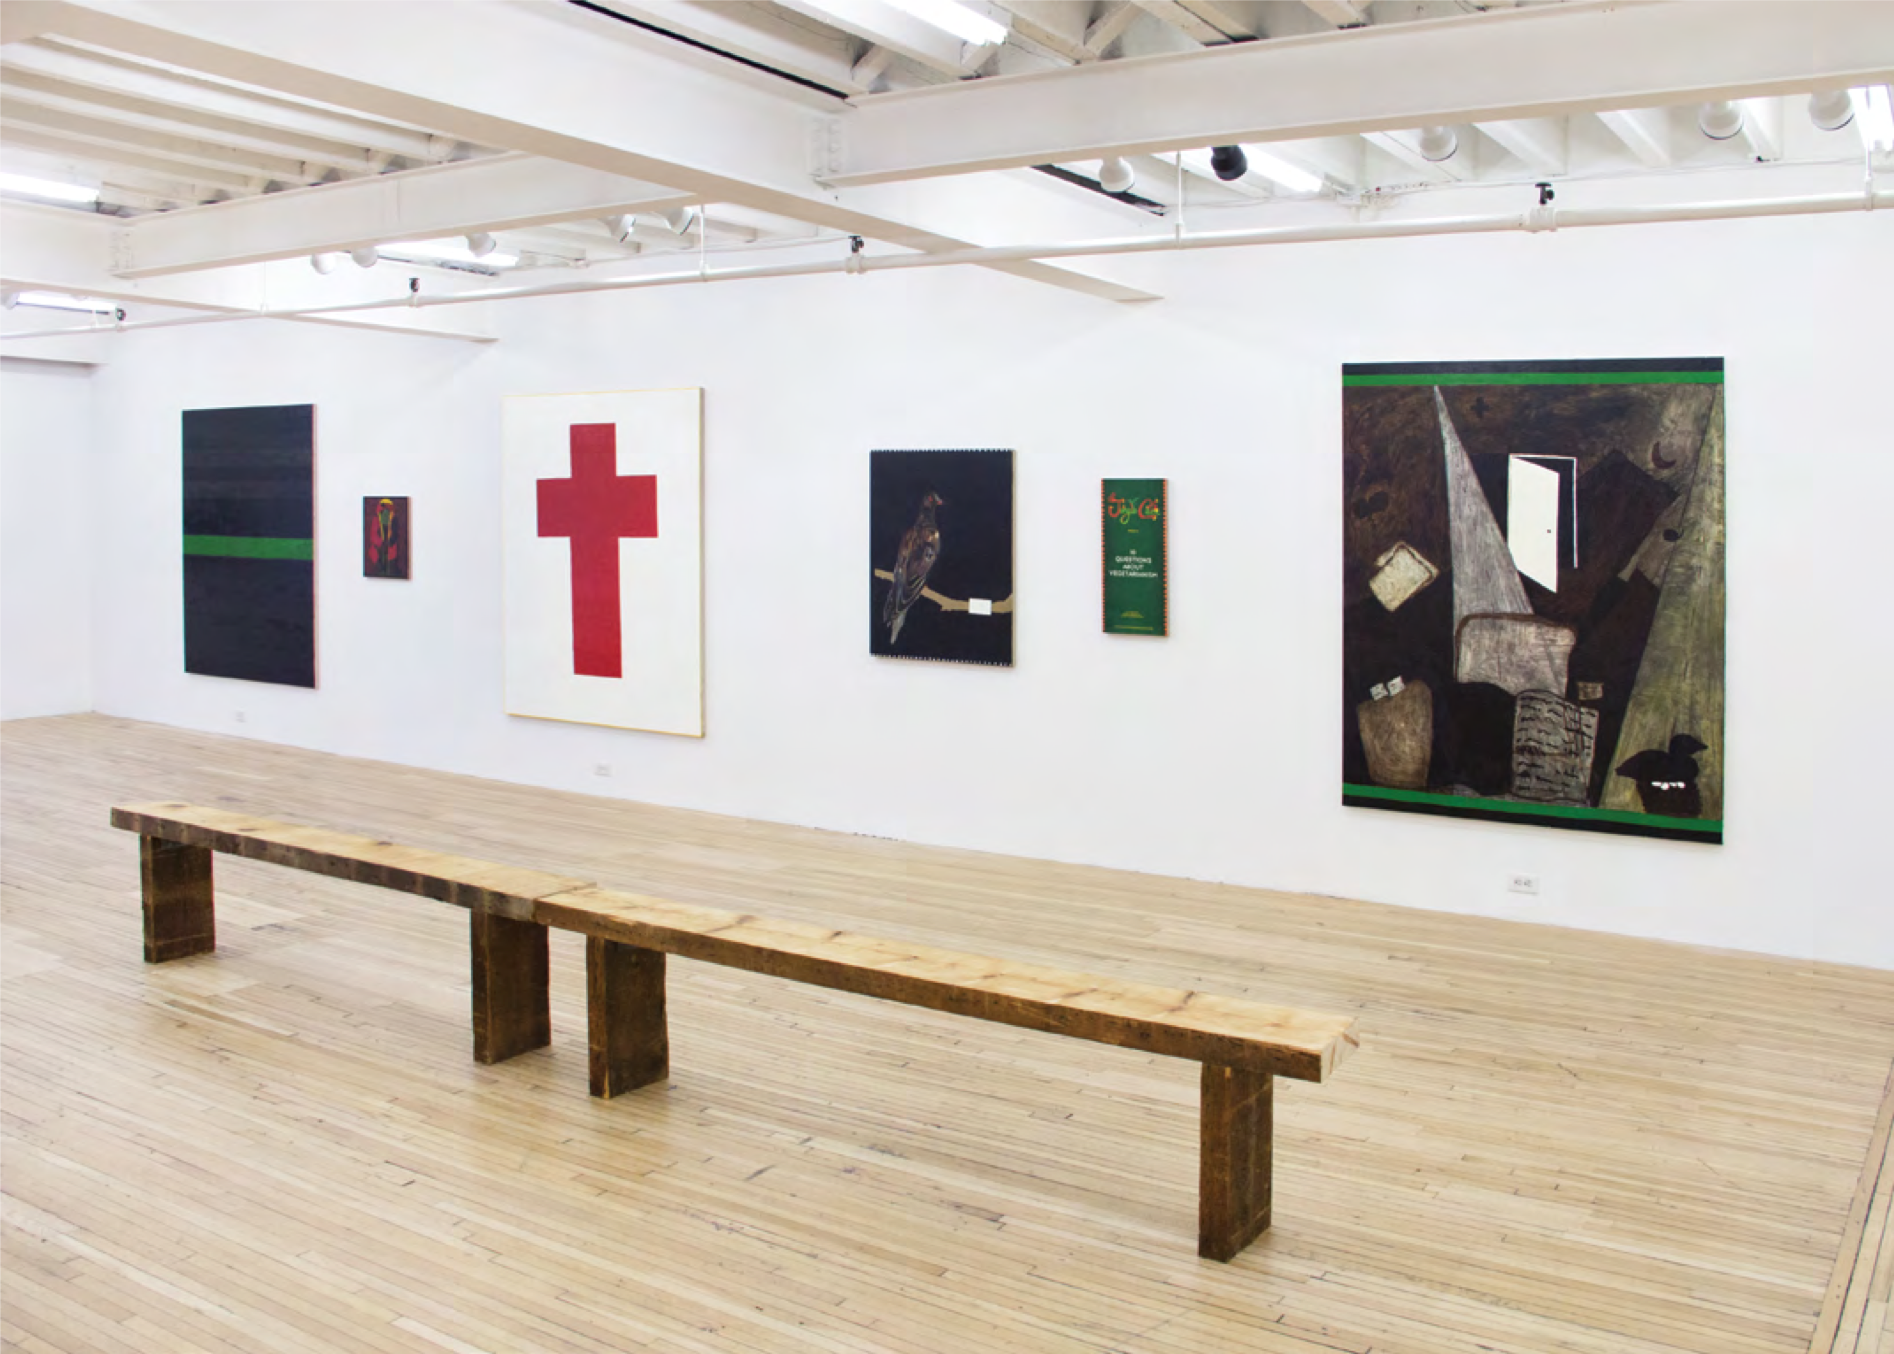 Installation view, The Meal of the Lion, Leidy Churchman at Murray Guy, New York, 2015. Courtesy of Murray Guy.